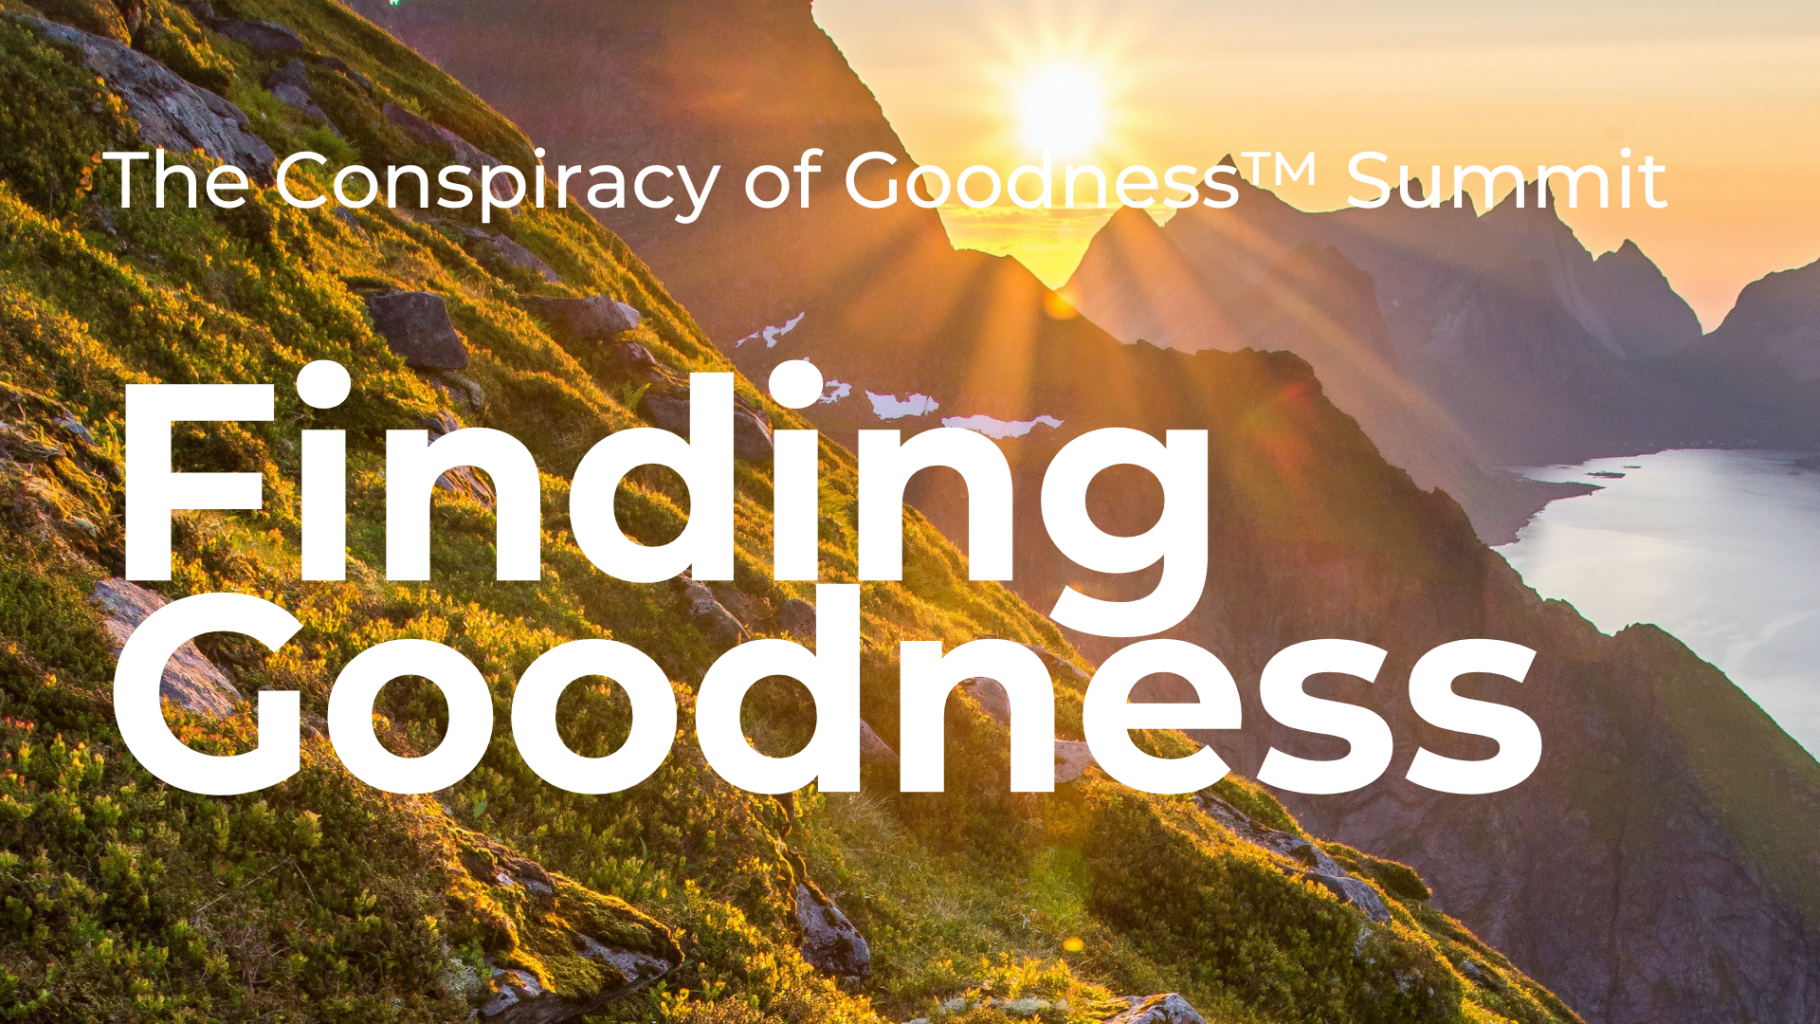 Image: Conspiracy of Goodness Summit